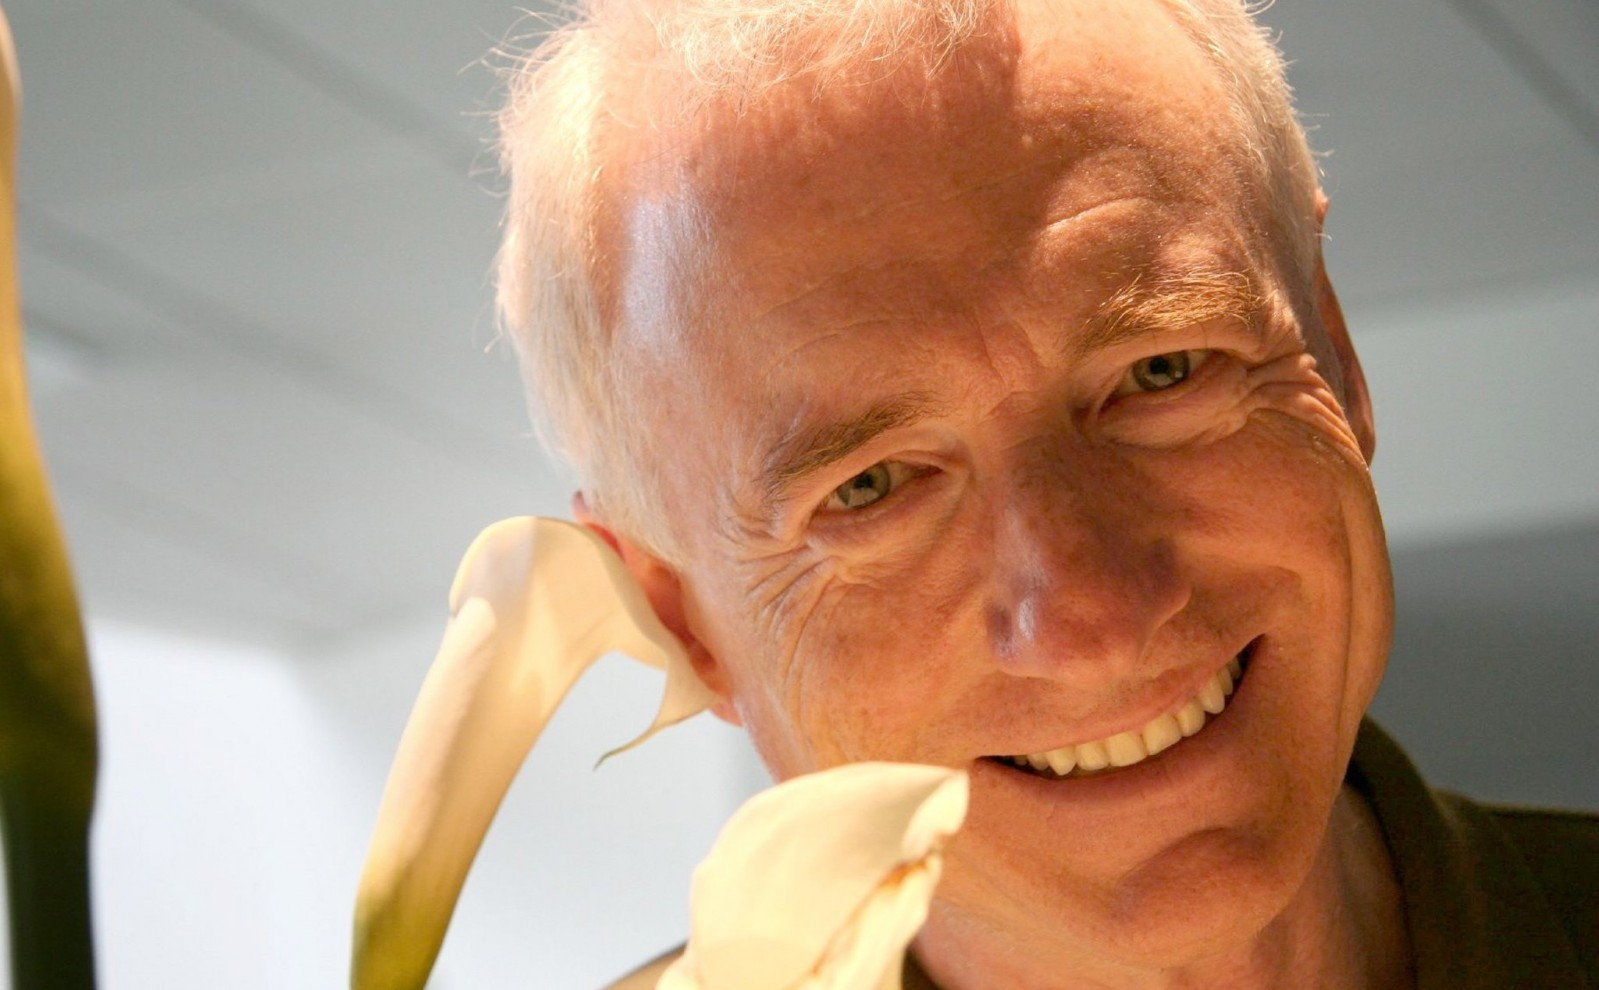 larry tesler cha de cua lenh cut copy paste qua doi o tuoi 74